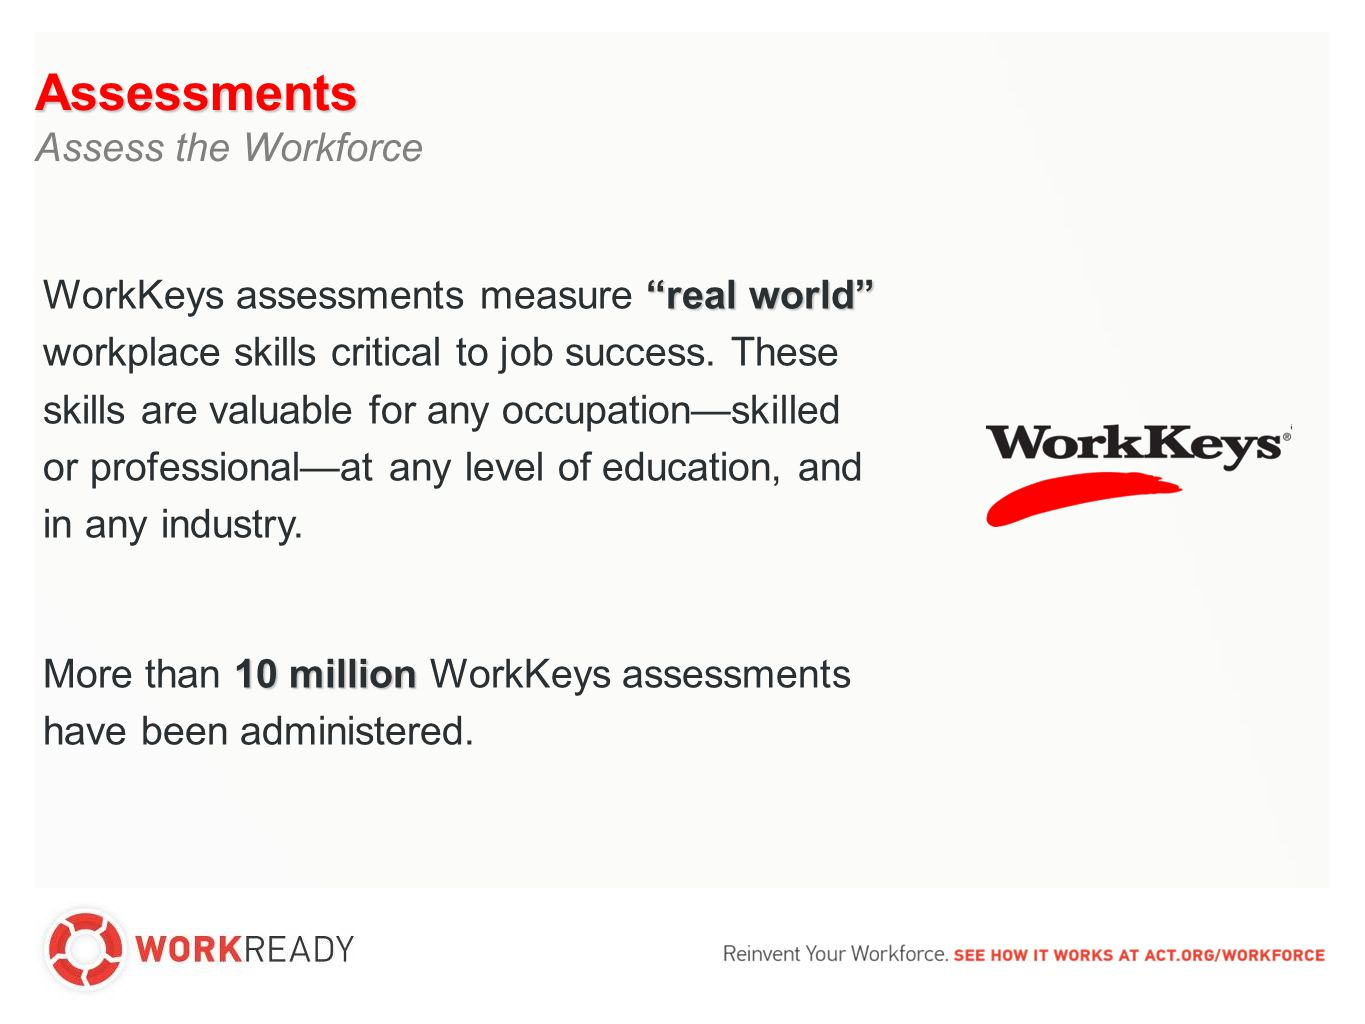 real world WorkKeys assessments measure real world workplace skills critical to job success.